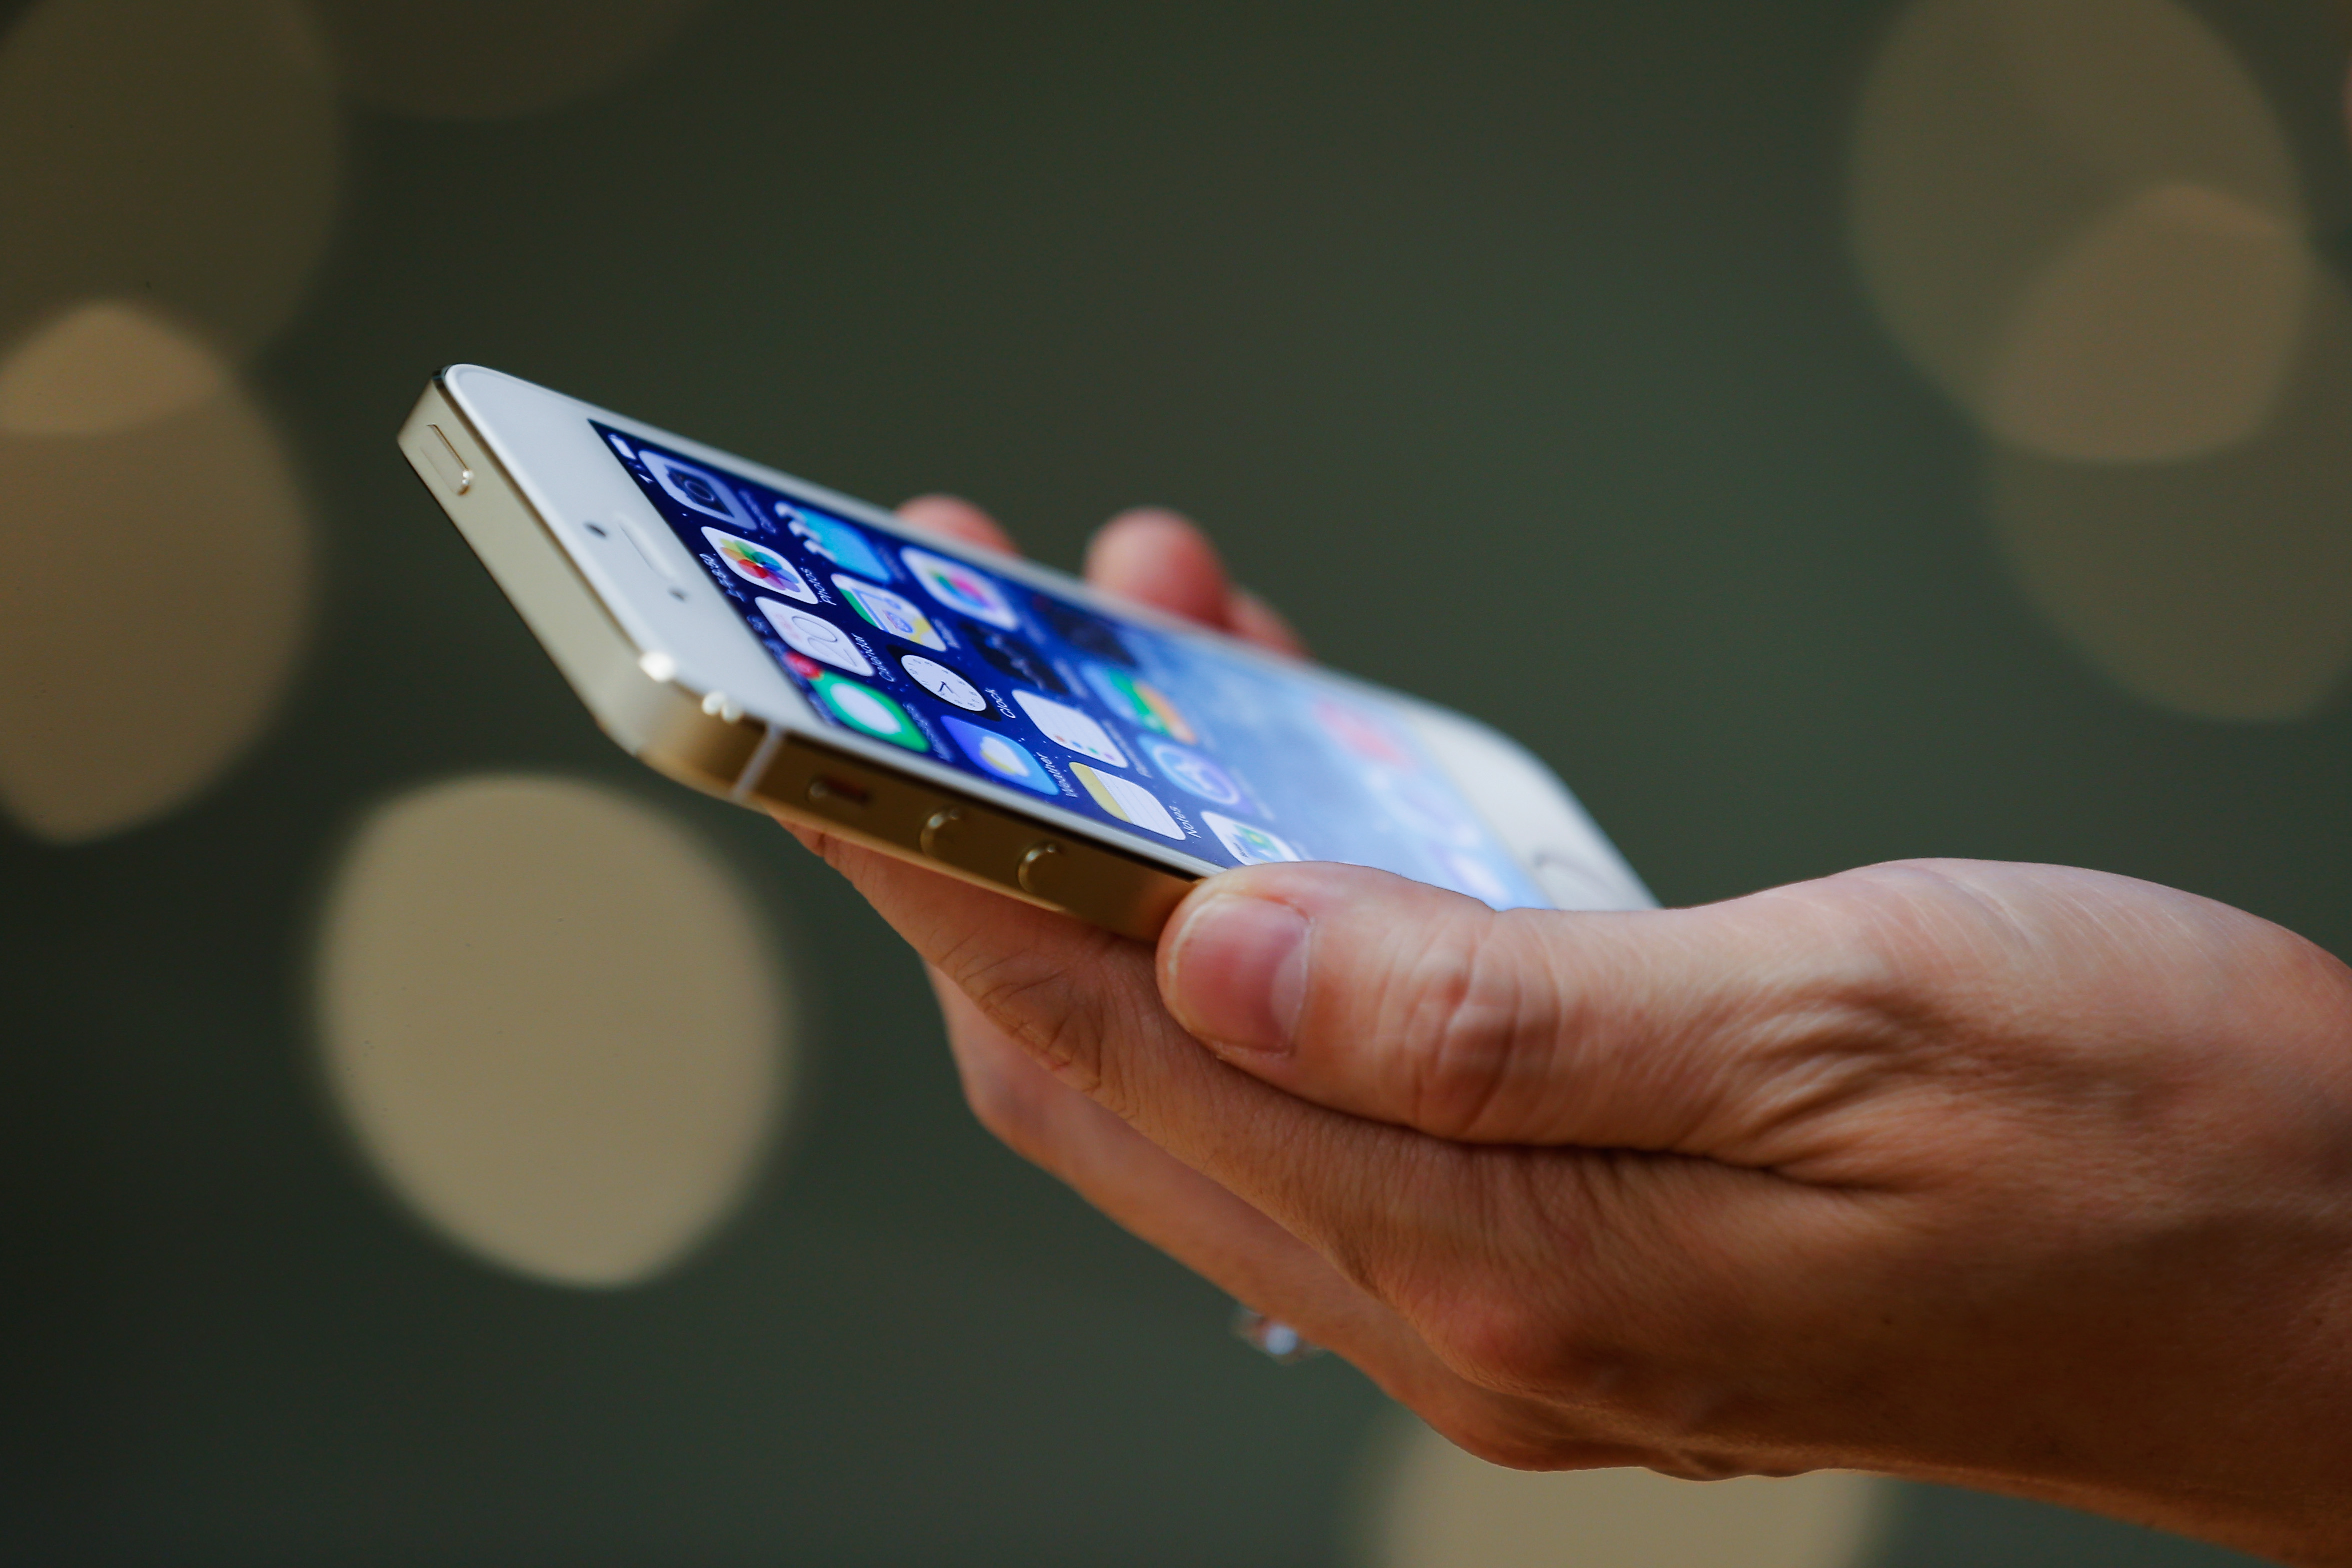 A customer inspects the new iPhone at the Wangfujing flagship store on Sept. 20, 2013 in Beijing,